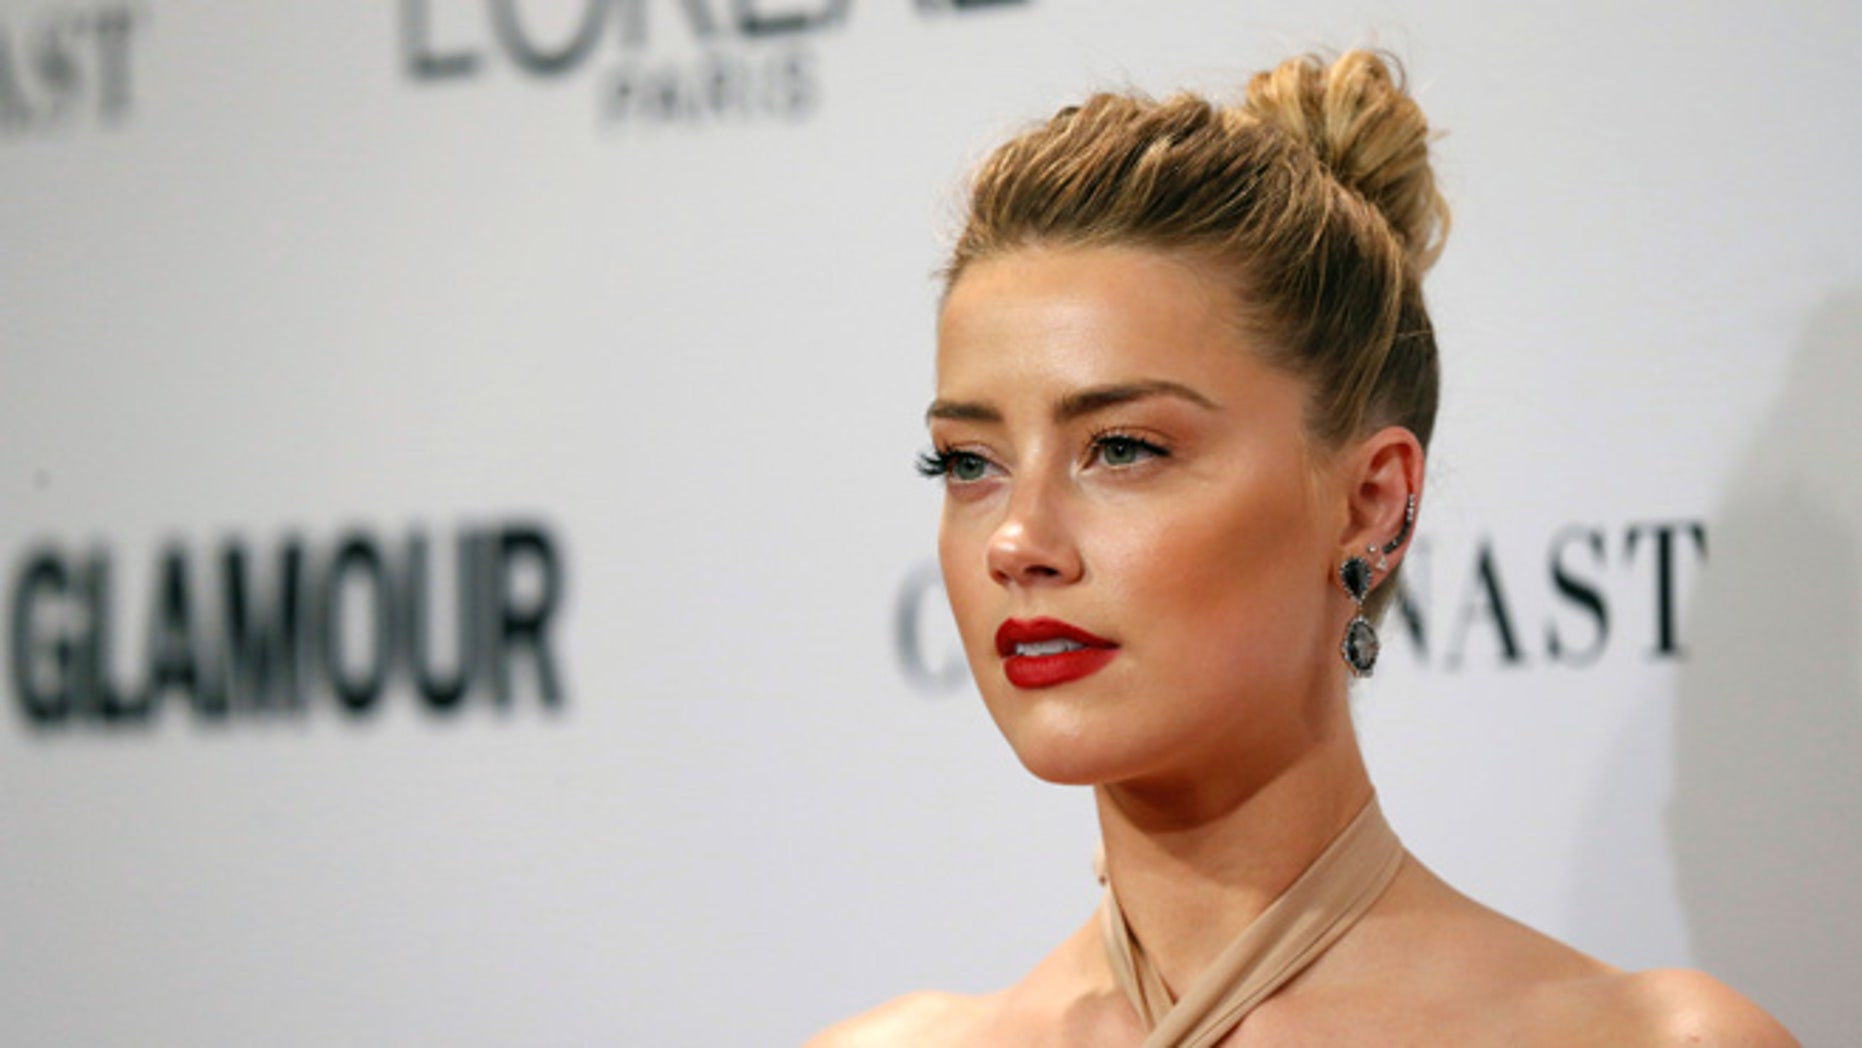 Actor Amber Heard poses at the Glamour Women of the Year Awards in Los Angeles, California, U.S., November 14, 2016. REUTERS/Mario Anzuoni - RTX2TP4P